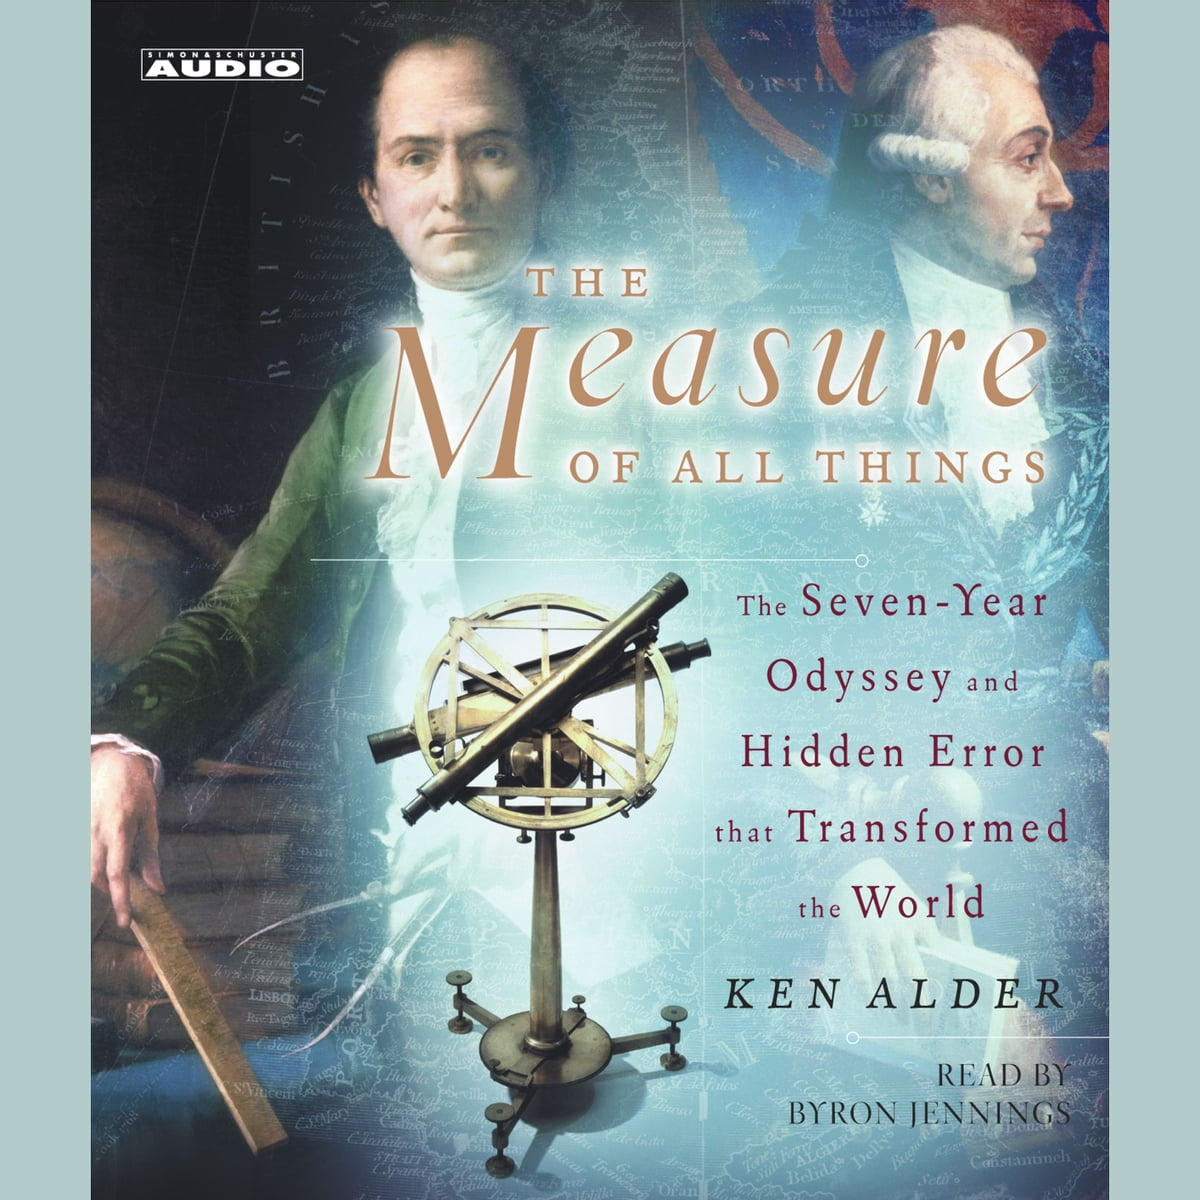 The Measure of All Things The Seven-Year Odyssey and Hidden Error That Transformed the World